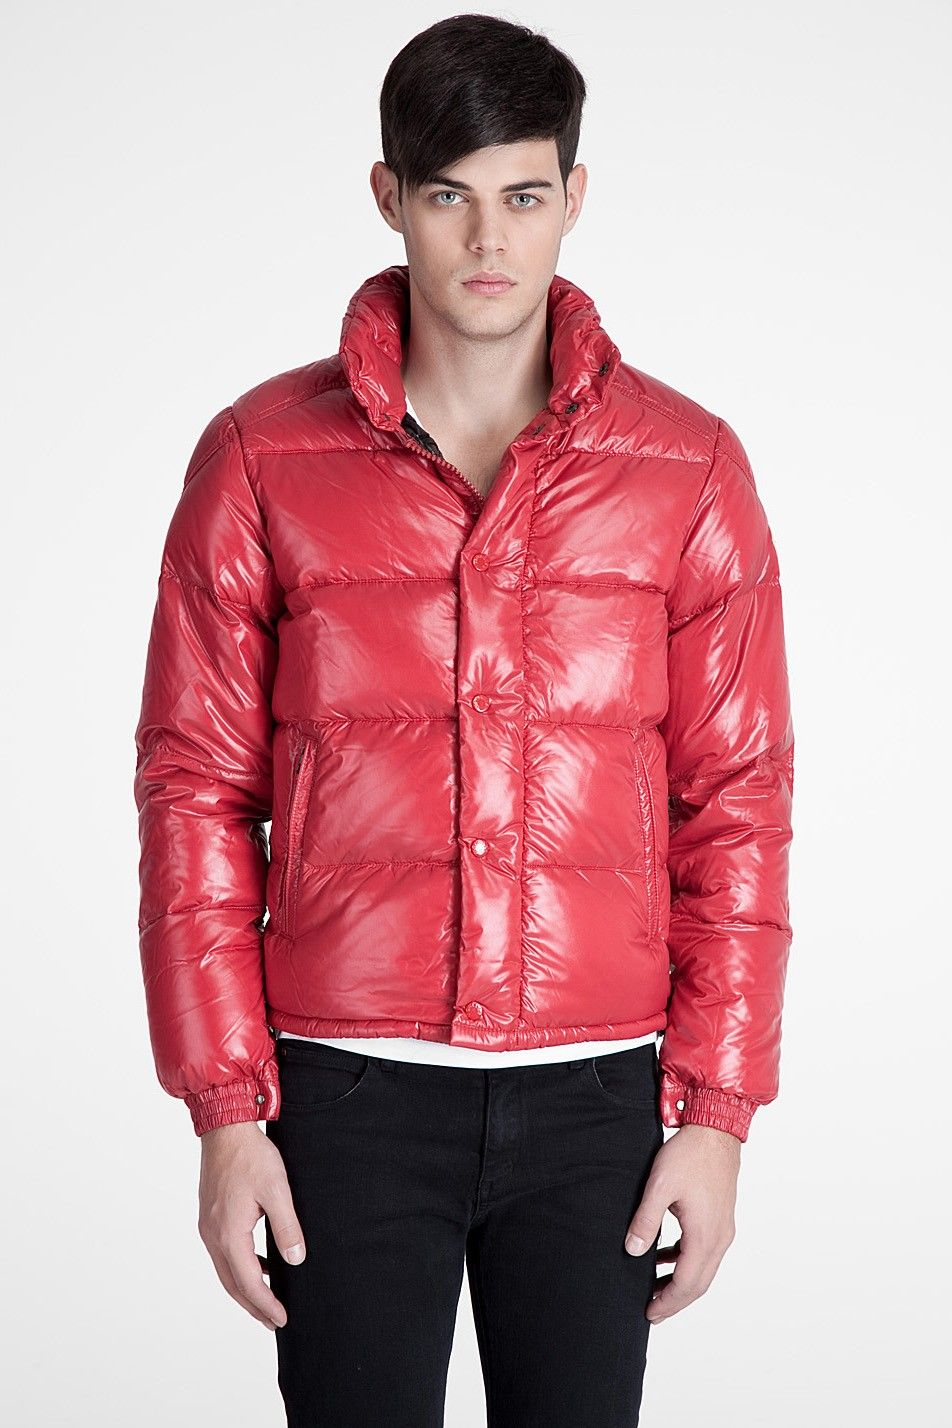 Moncler Gamme Rouge RTW Fall 2013 Winter jackets, Canada